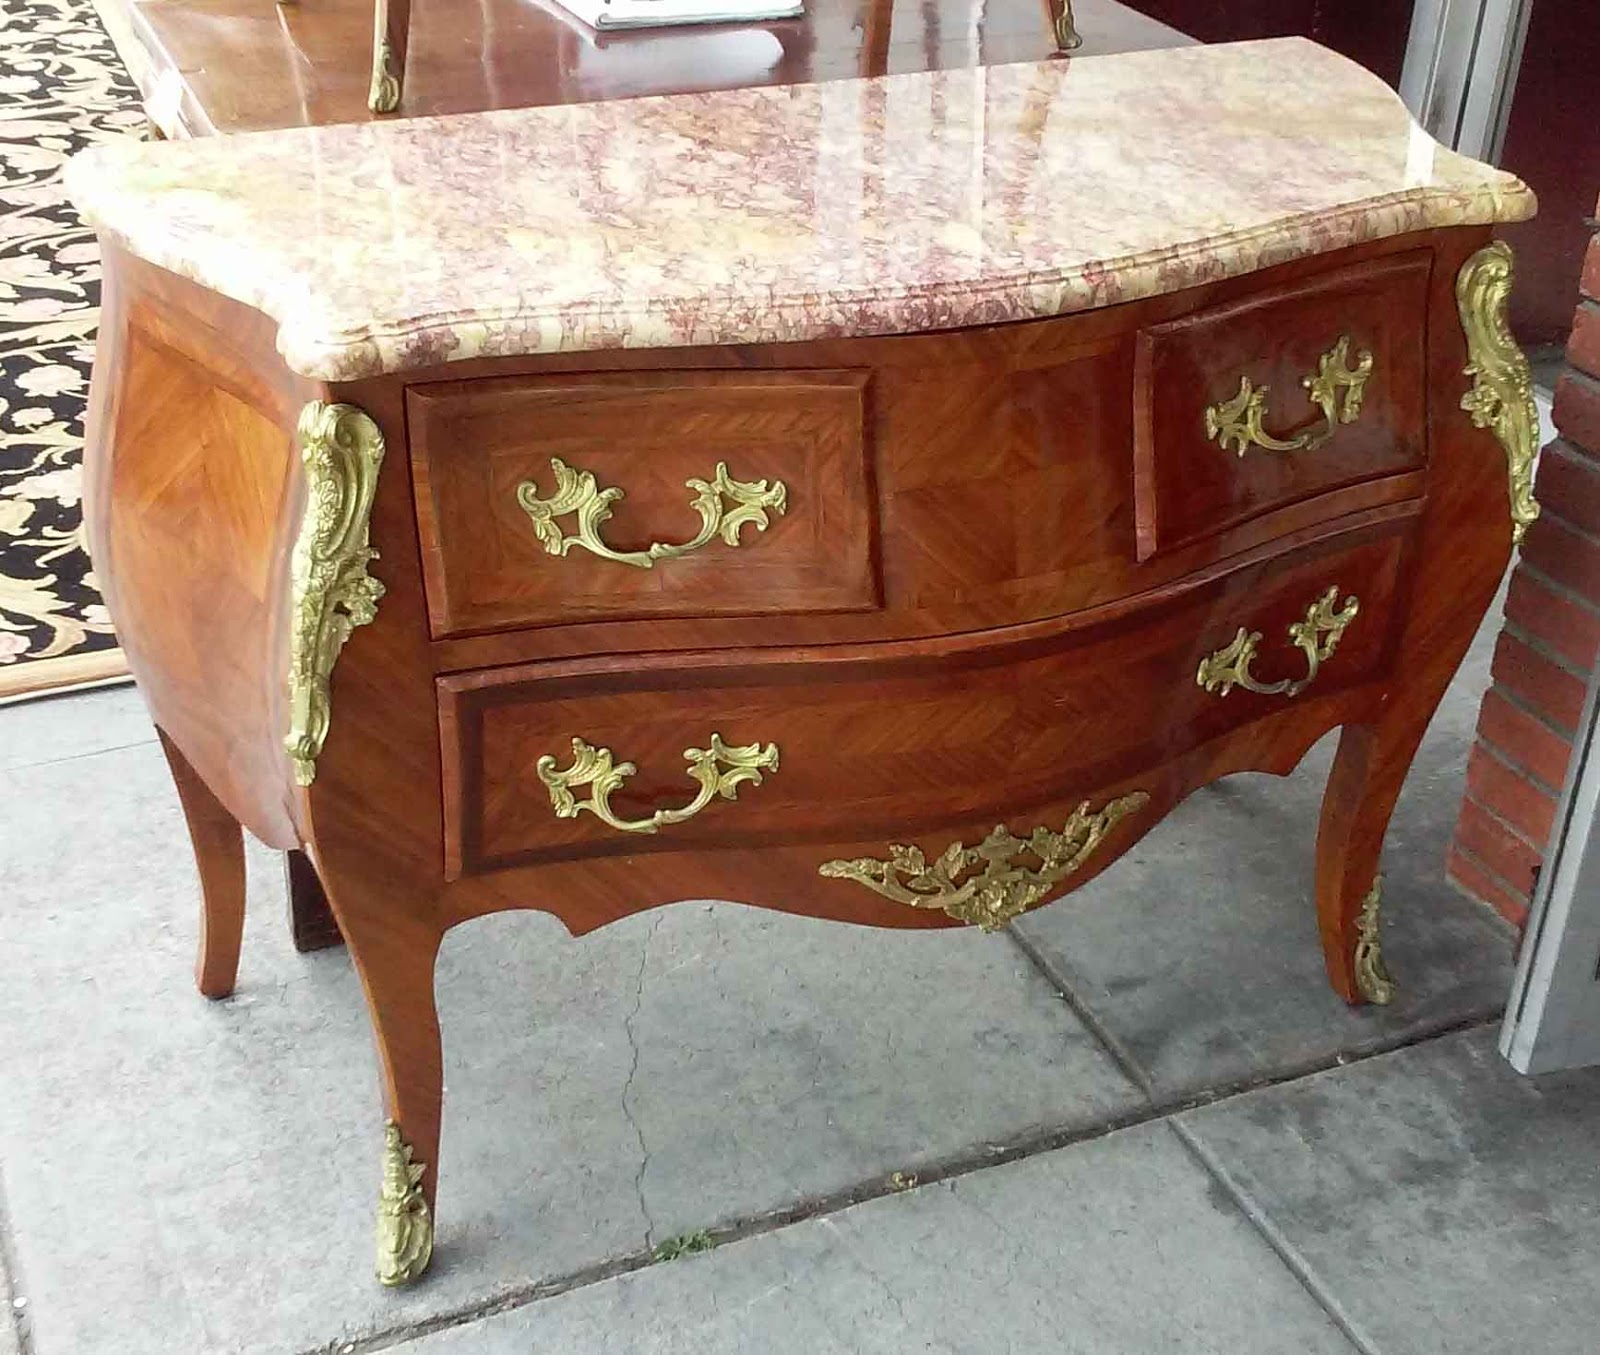 UHURU FURNITURE COLLECTIBLES SOLD MarbleTop Louis XIV Style